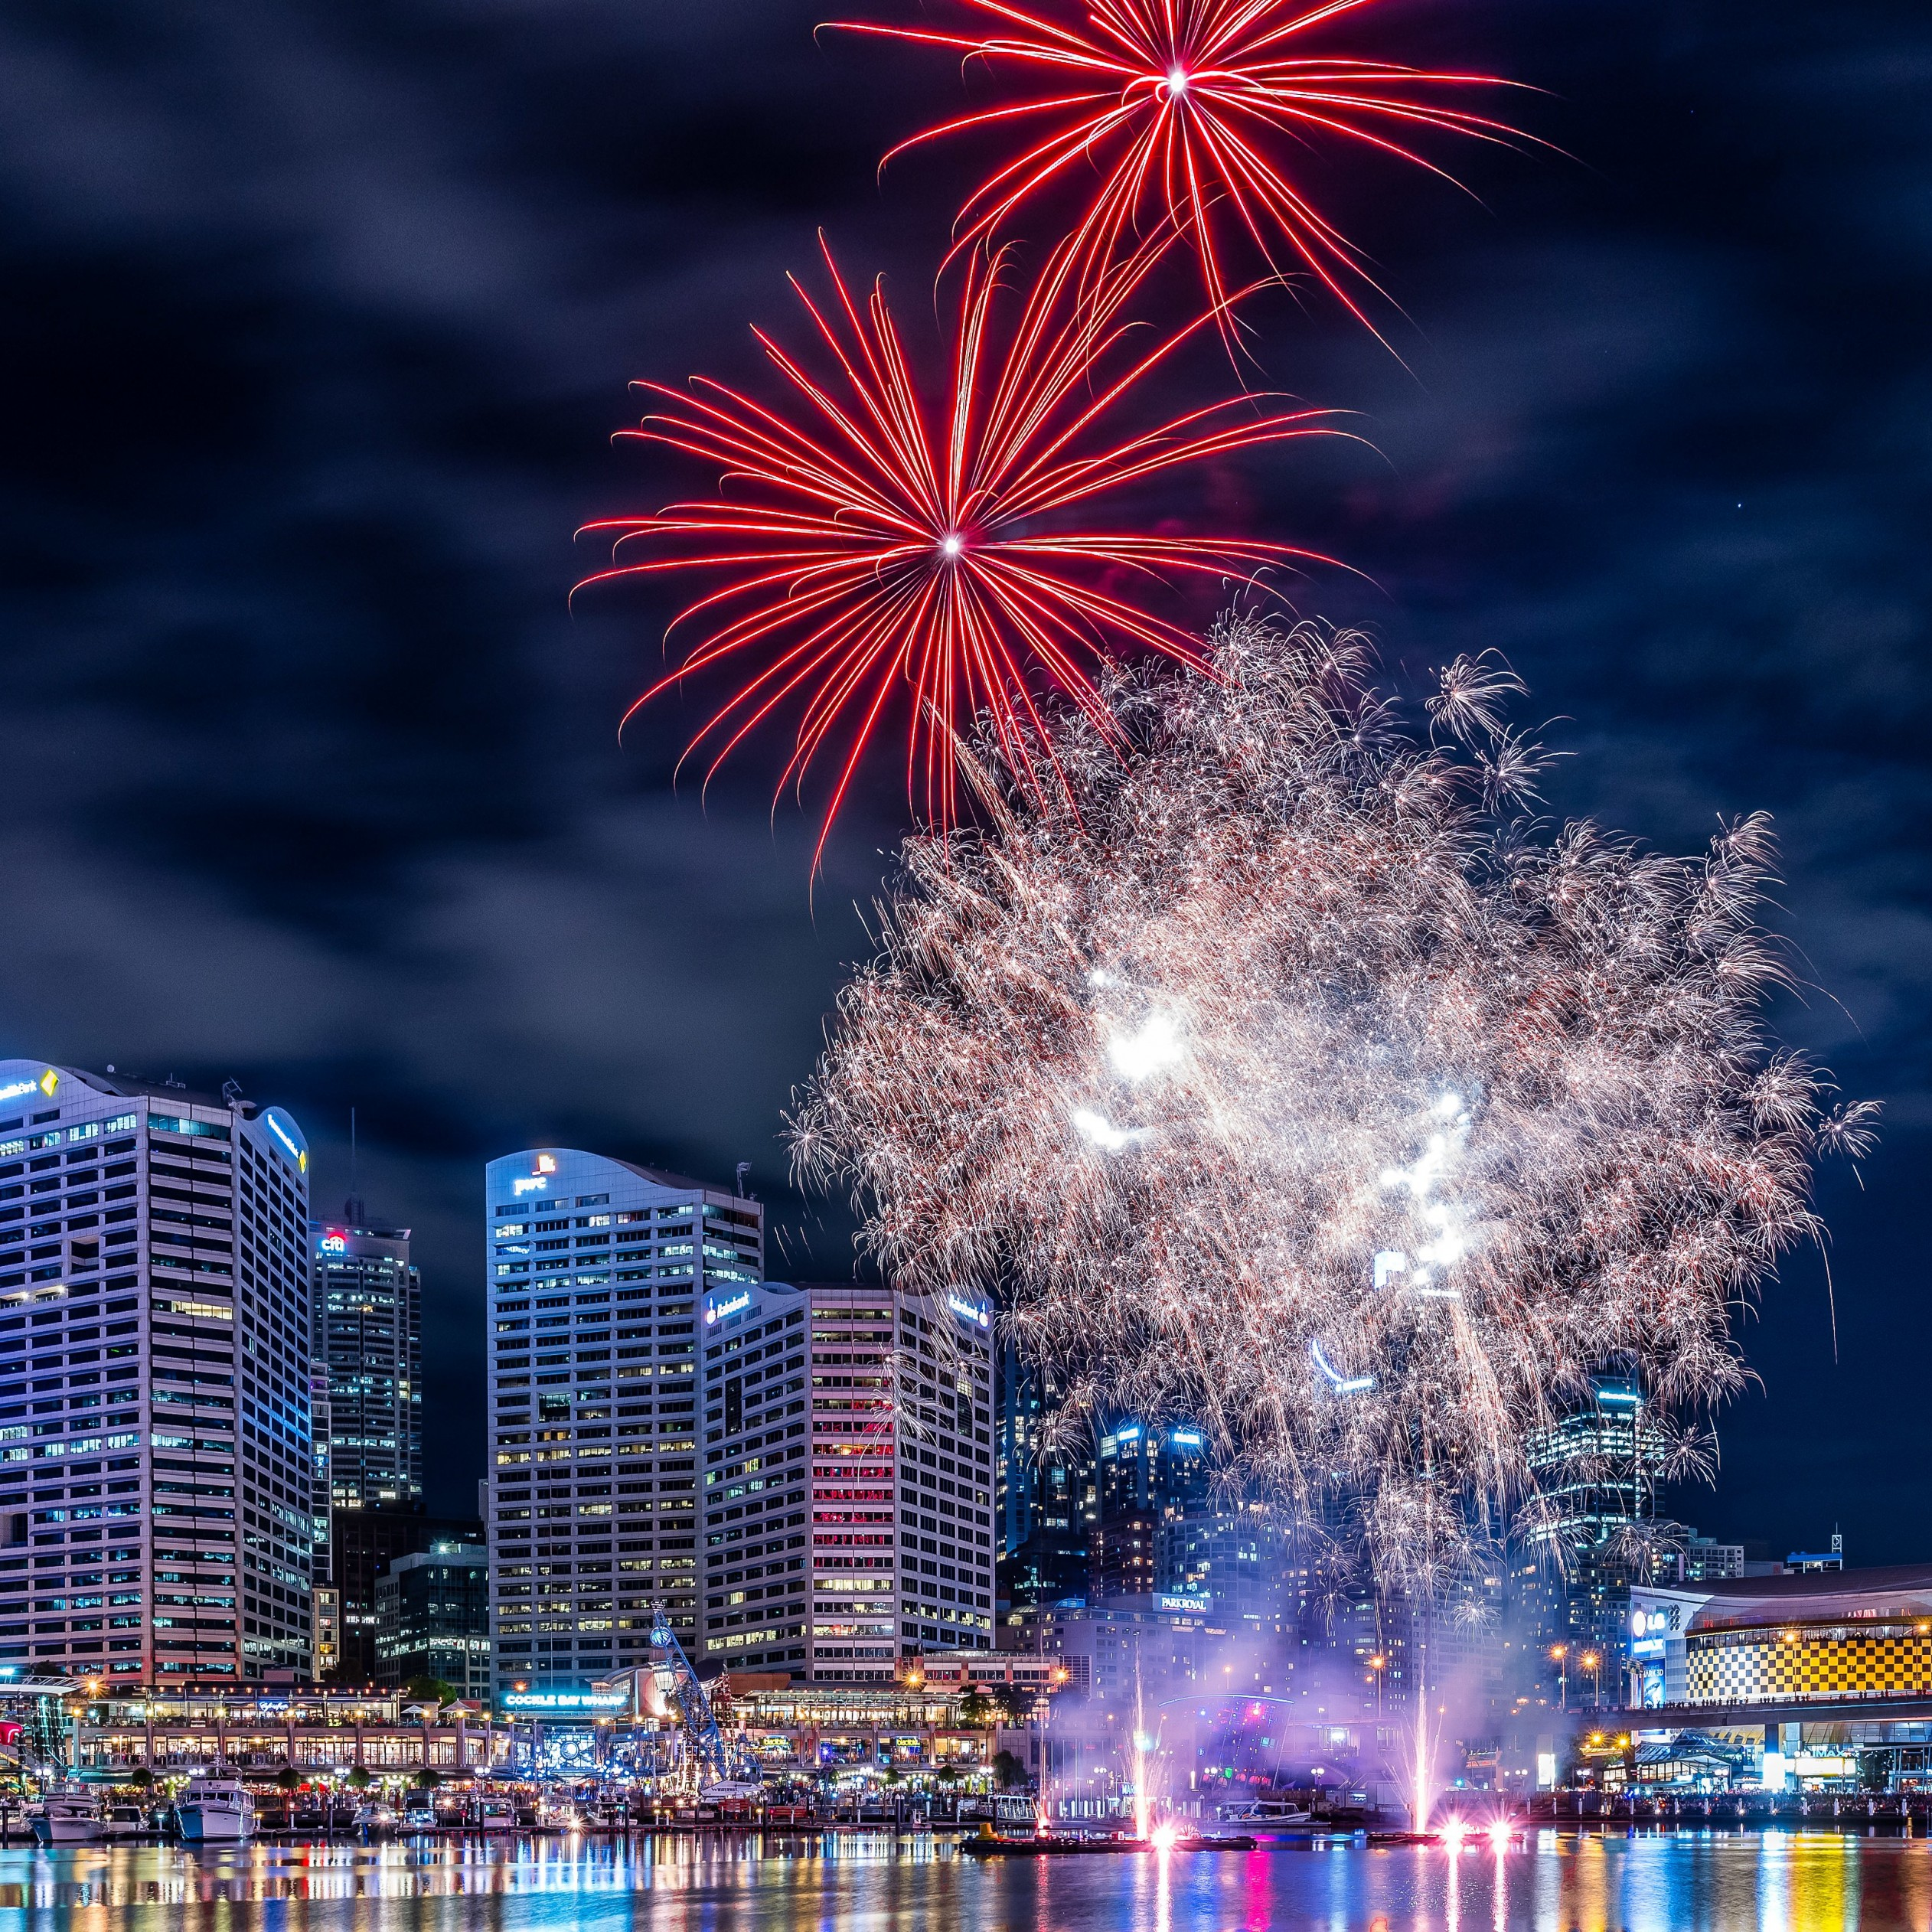 Fireworks In Darling Harbour Wallpaper for Apple iPad mini 2